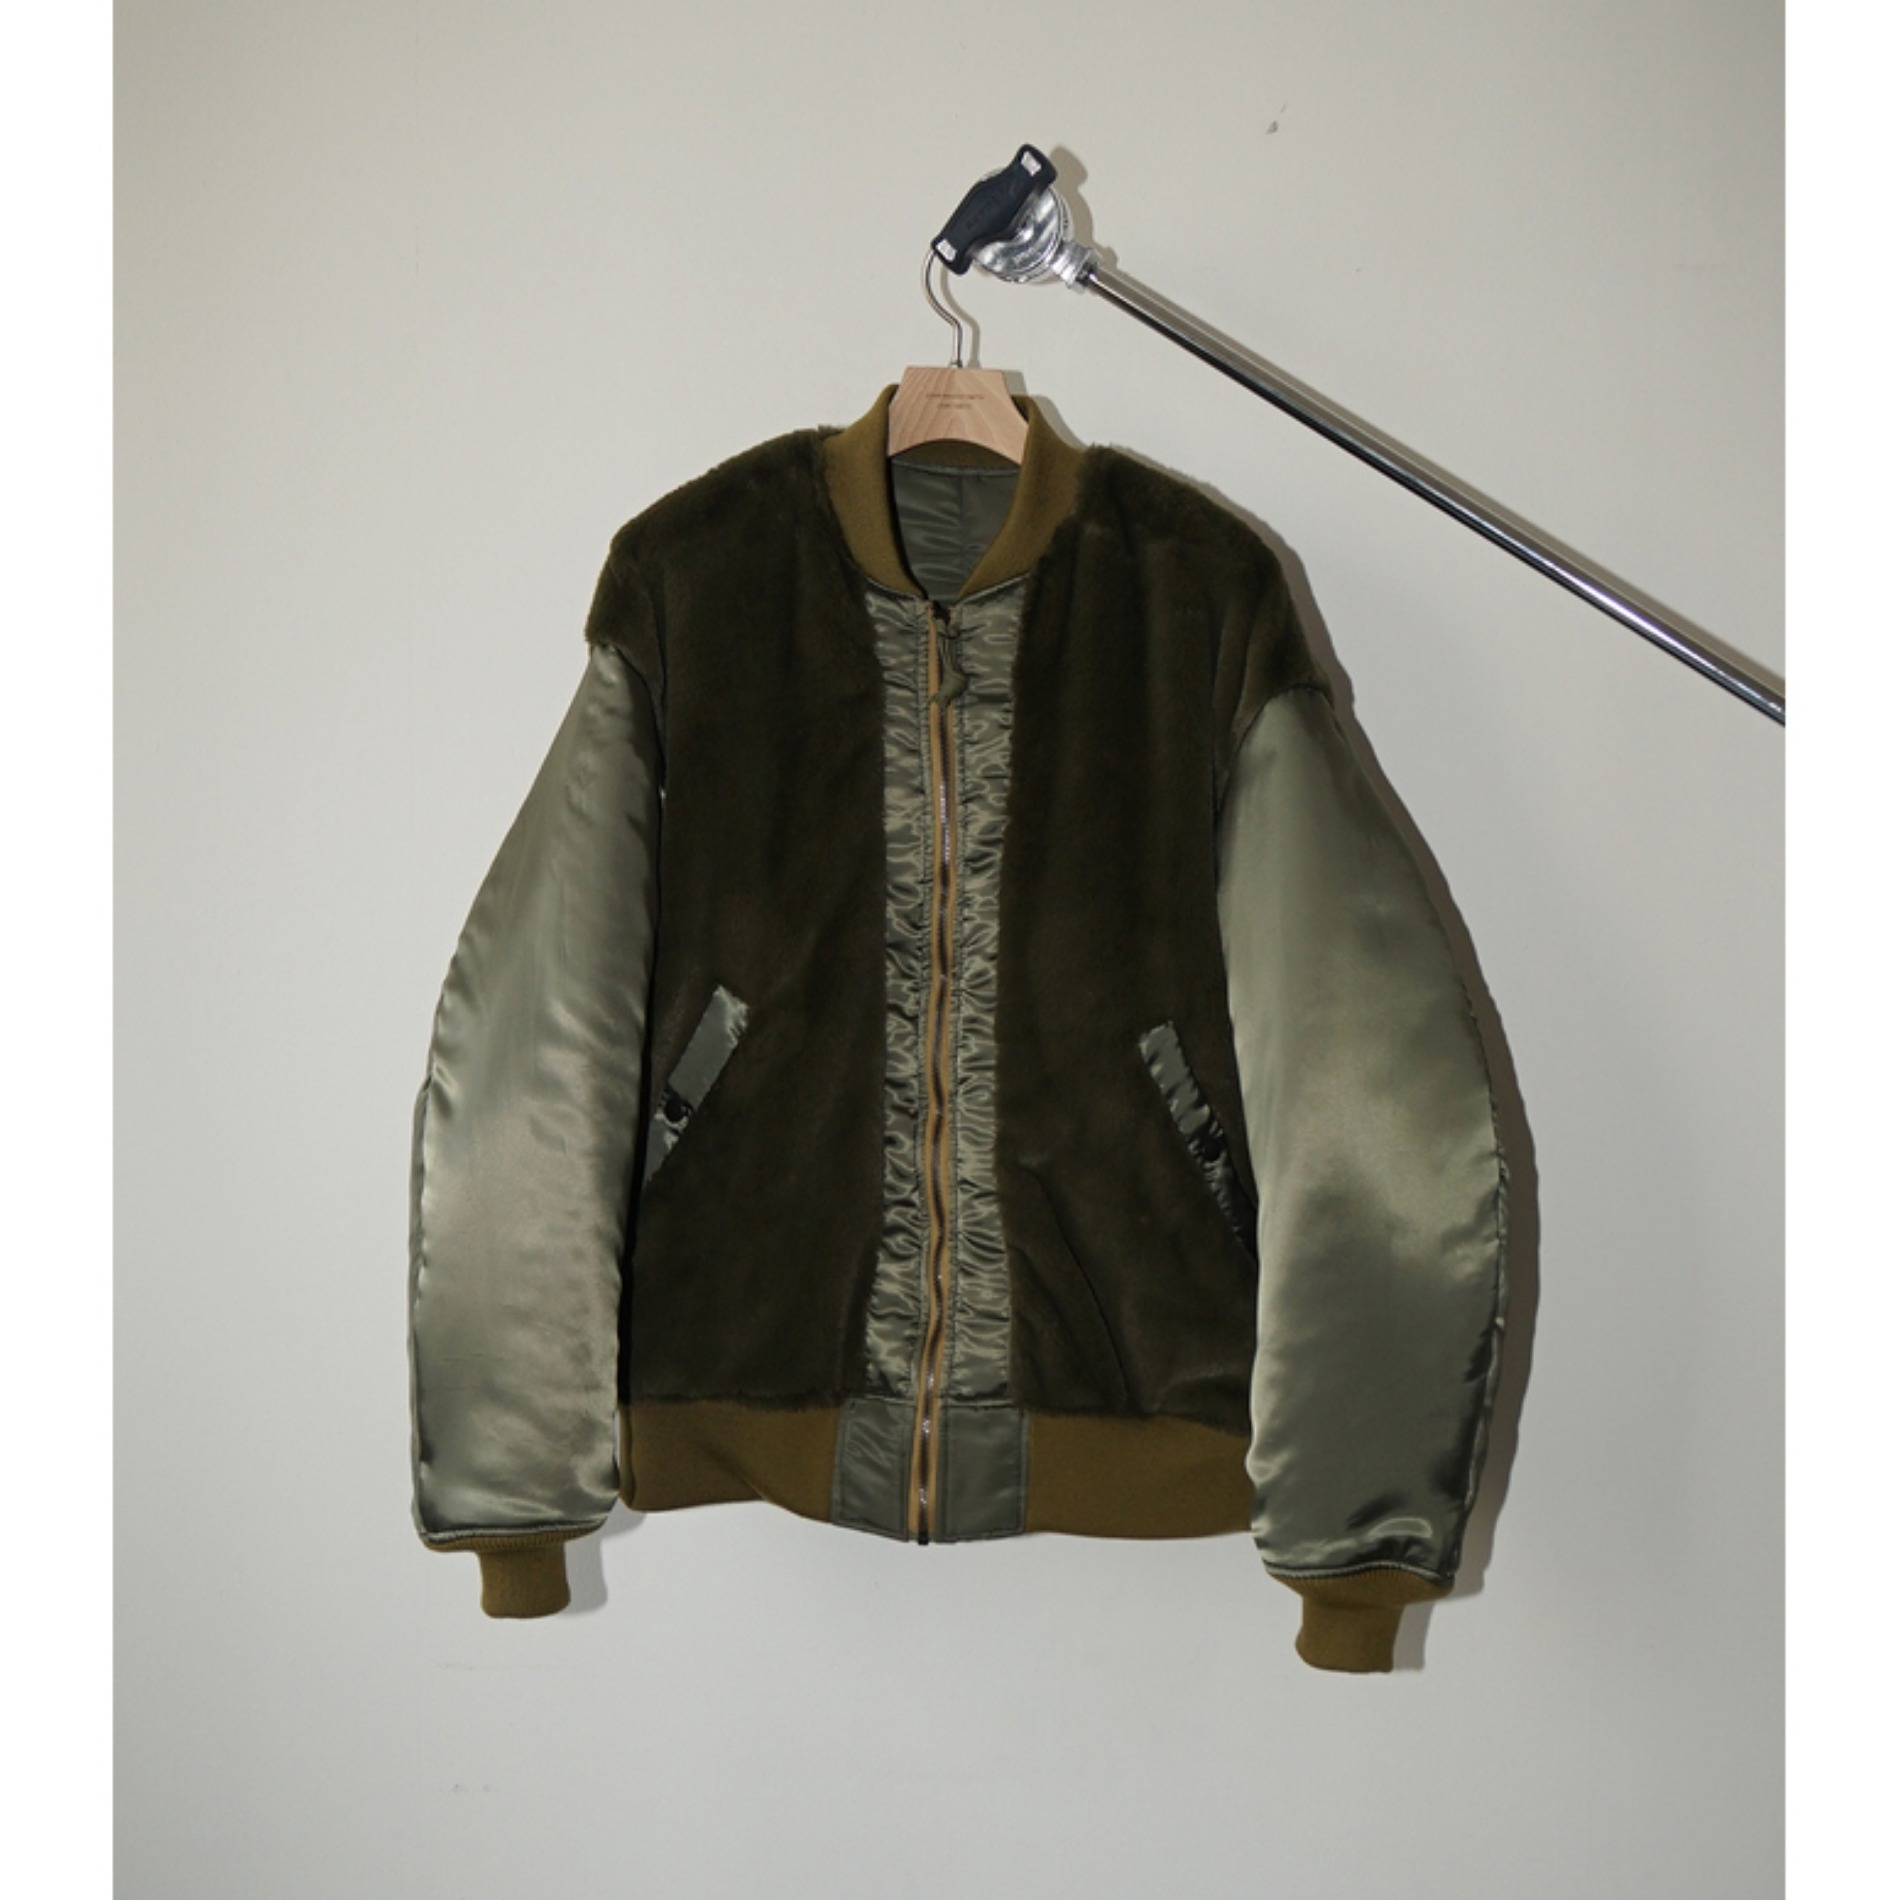 AW20 JOHN MASON SMITH REVERSIBLE FLIGHT JACKET MA-1 KHAKI